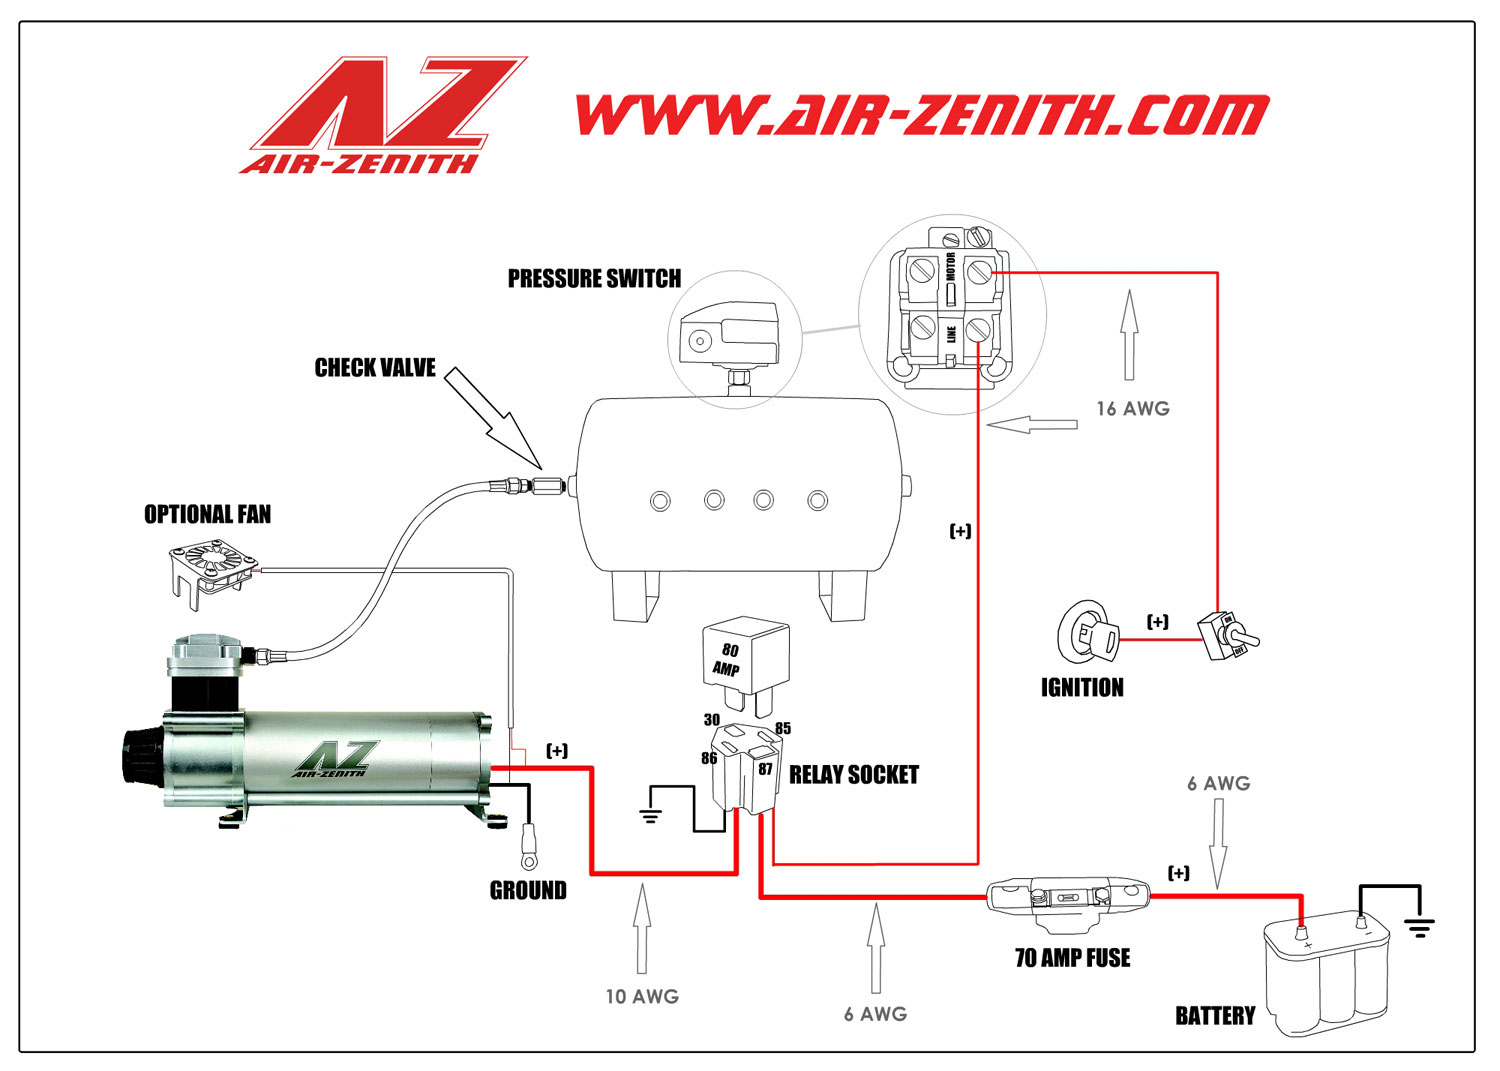 Portable Air Compressor Pressure Switch Wiring Diagram | Manual E-Books - Air Compressor Pressure Switch Wiring Diagram